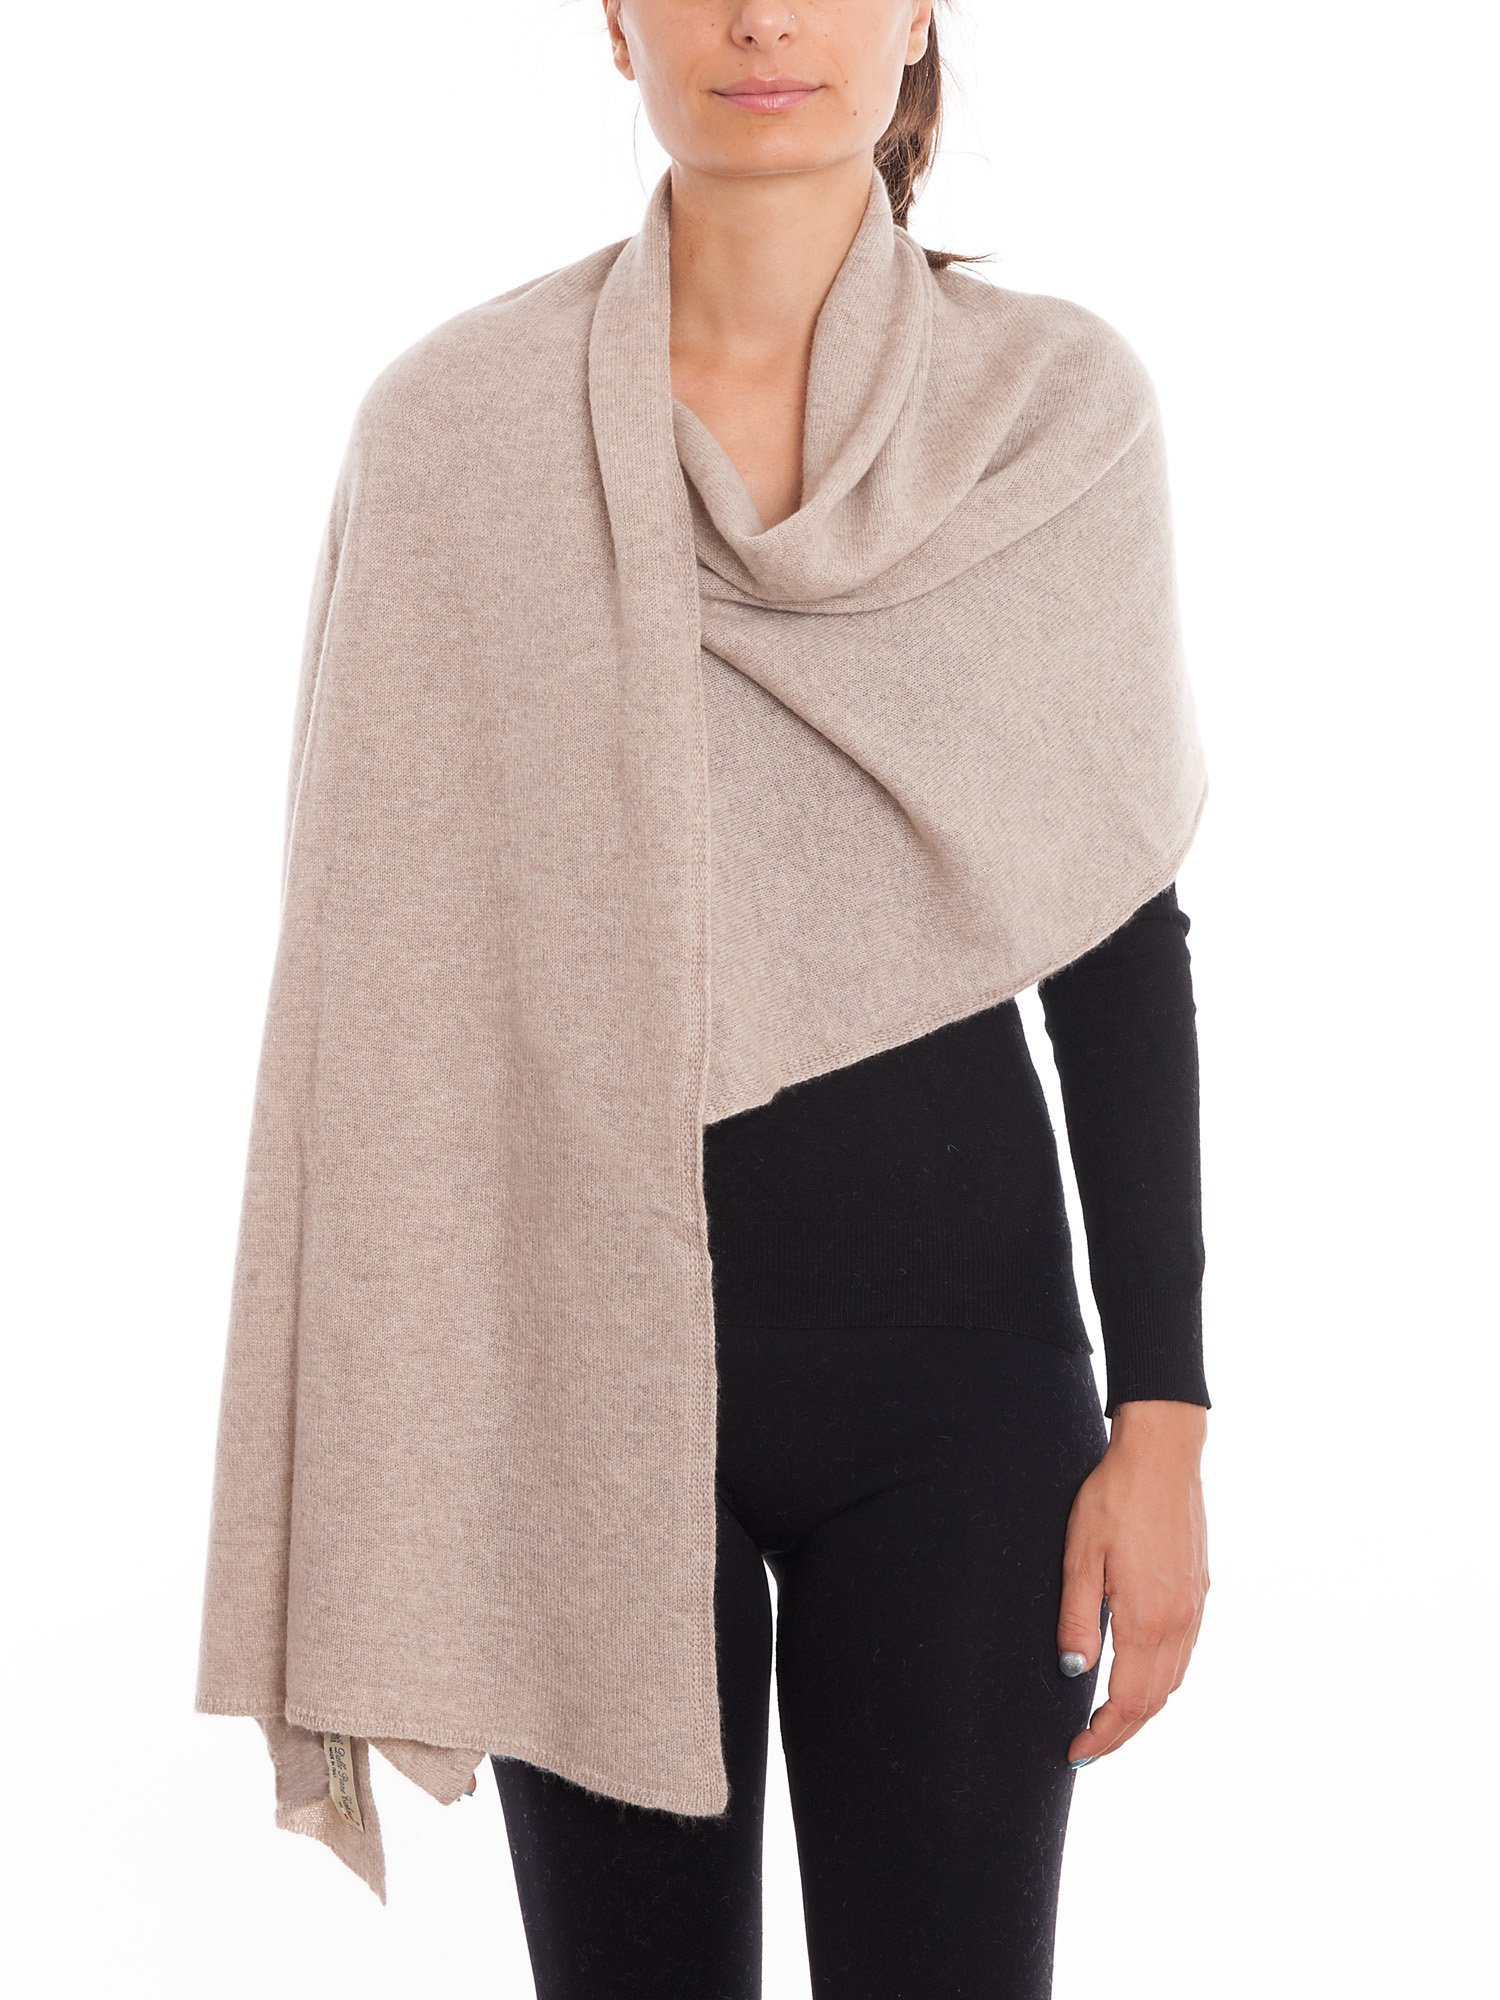 Dalle Piane Cashmere - Stole 100% cashmere - Made in Italy, Color: Beige, One size by DALLE PIANE CASHMERE